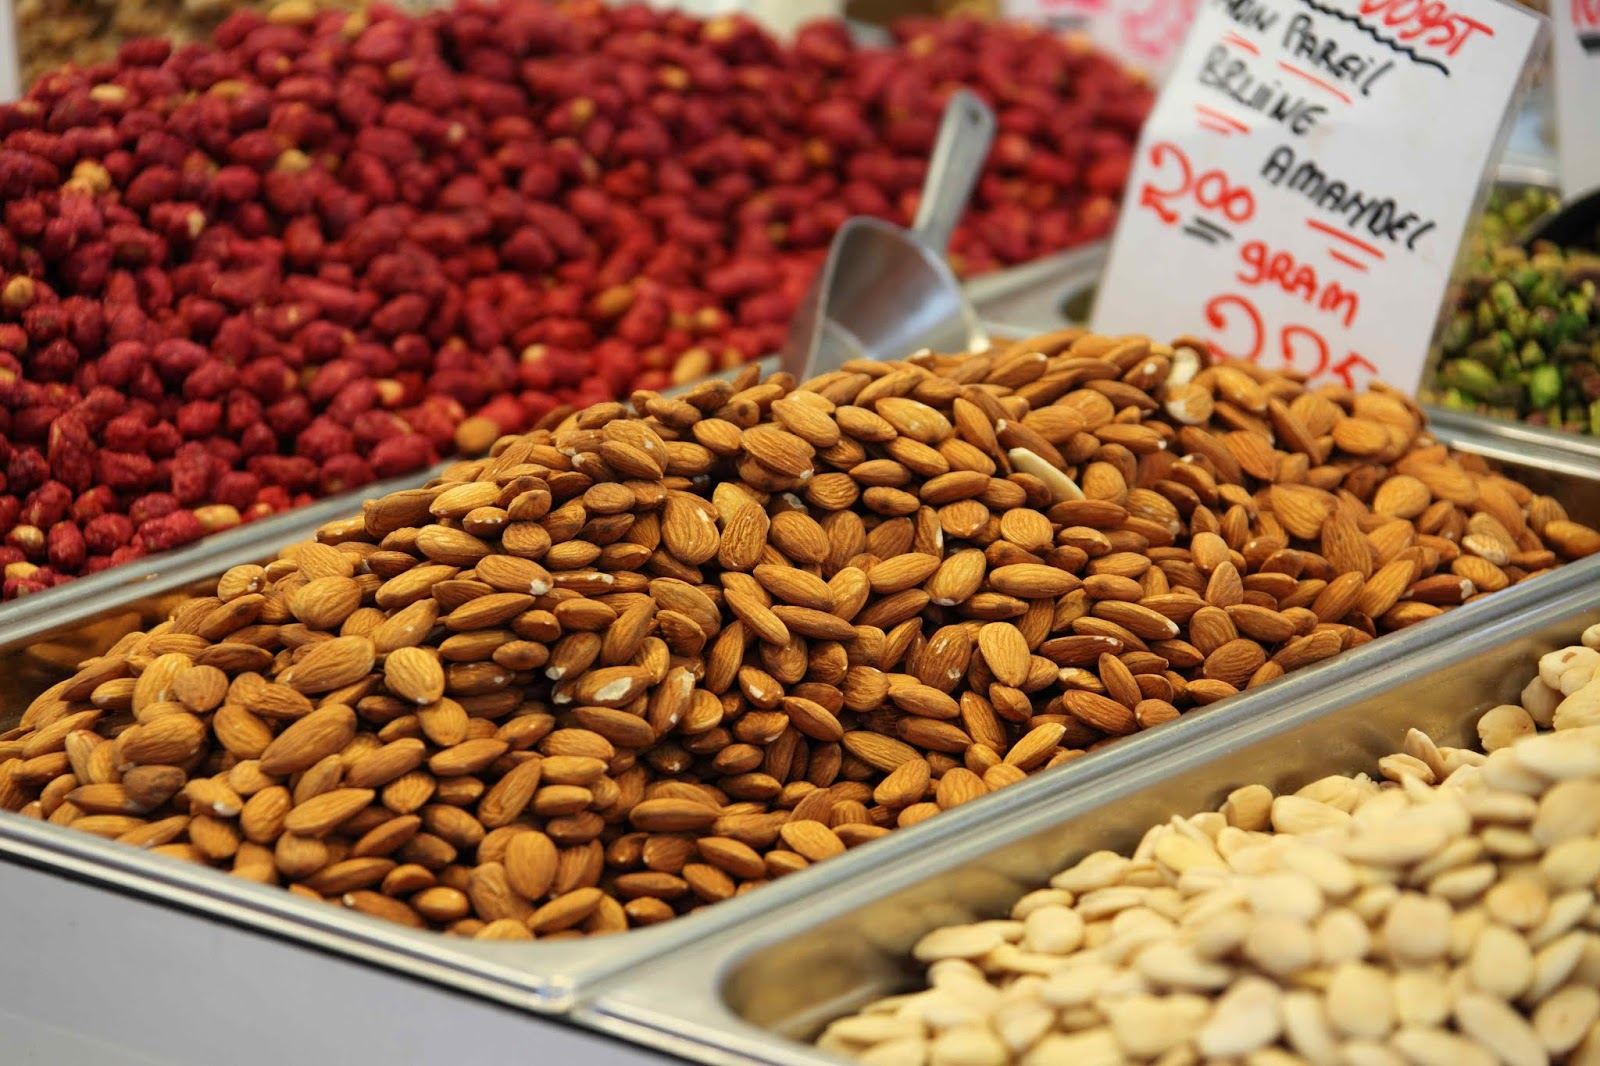 Best Foods to Control Diabetes - Both Type 1 and Type 2 - Nuts